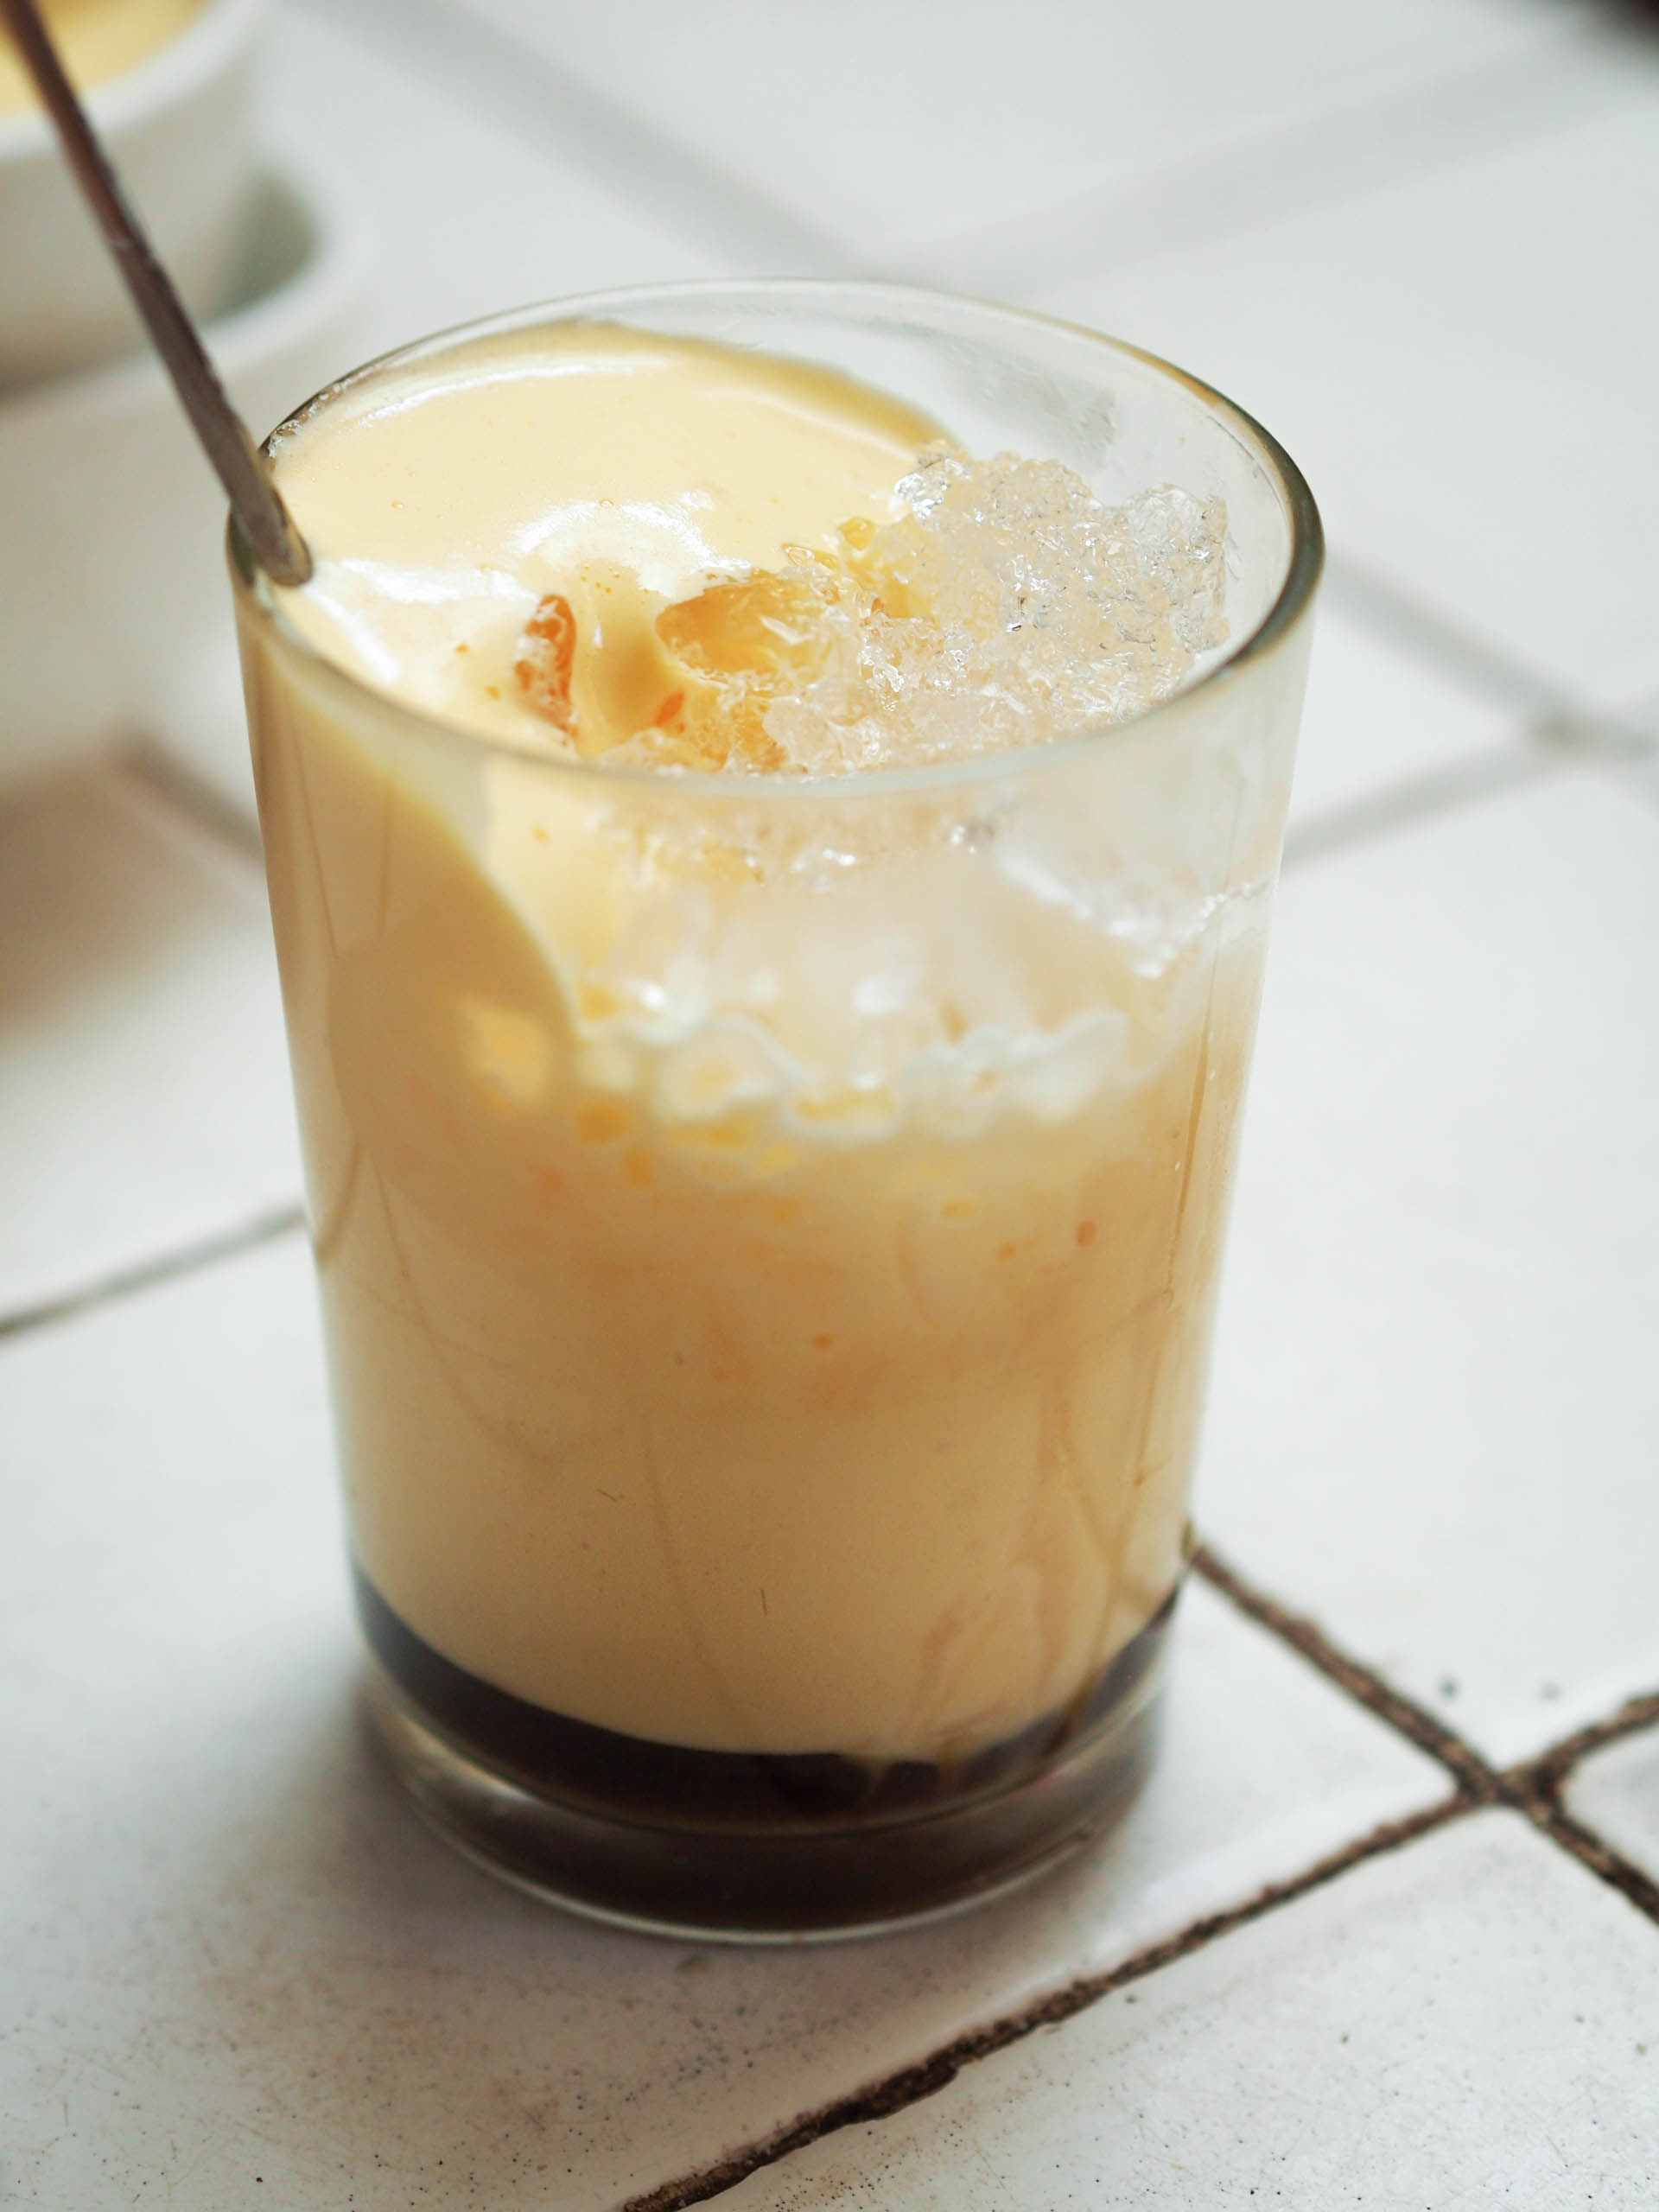 Cold Vietnamese egg coffee